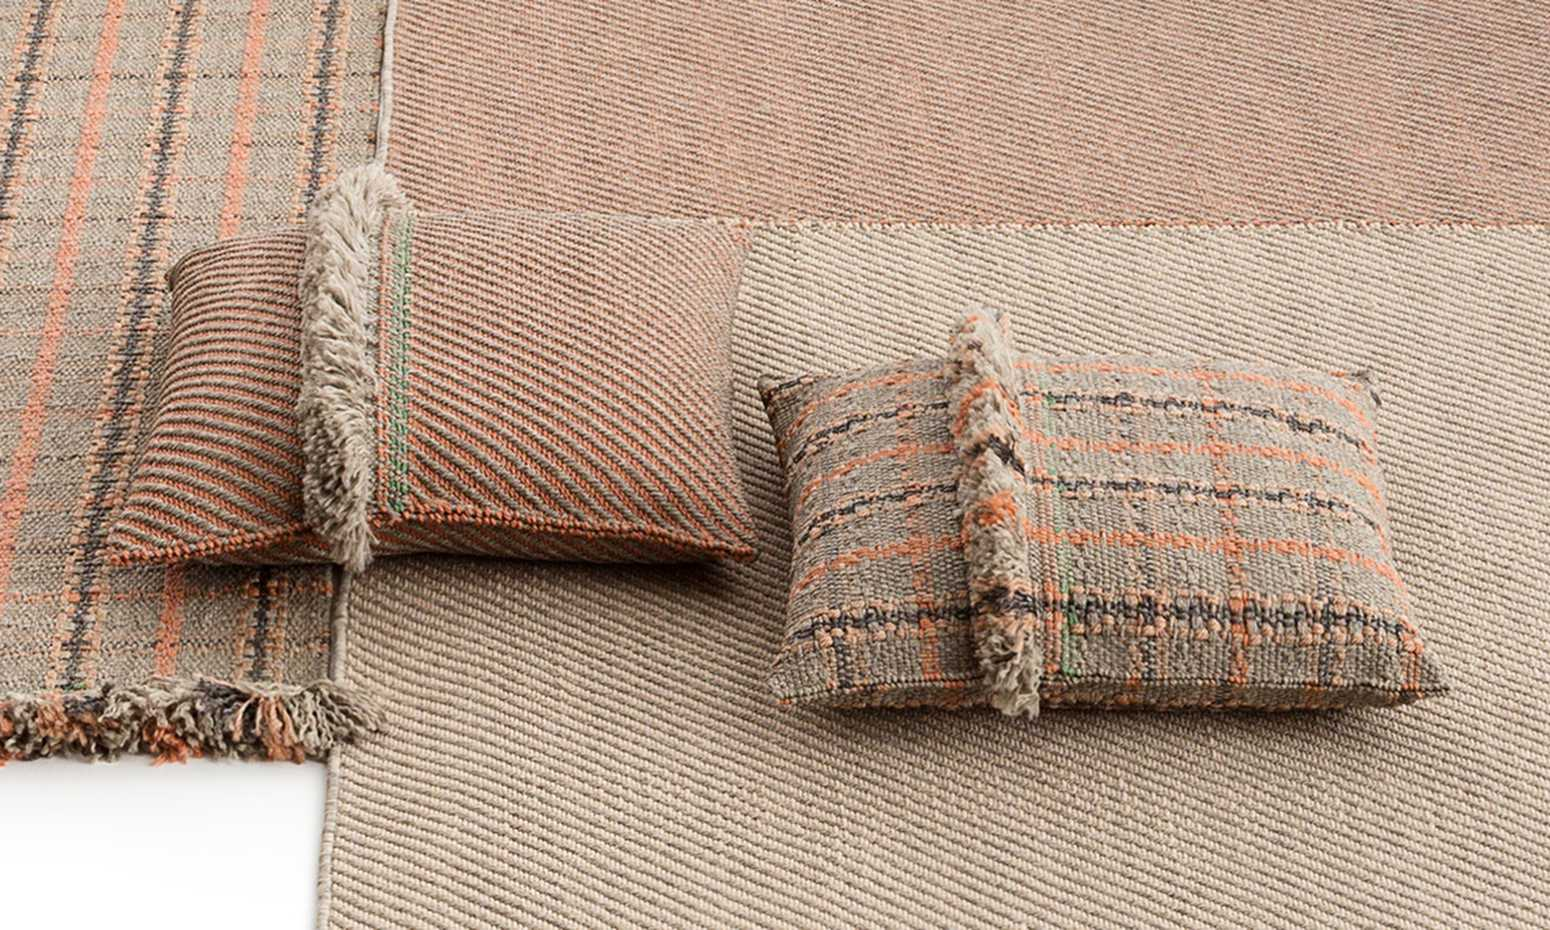 Garden Layers Cushions  by Gan Rugs product image 5